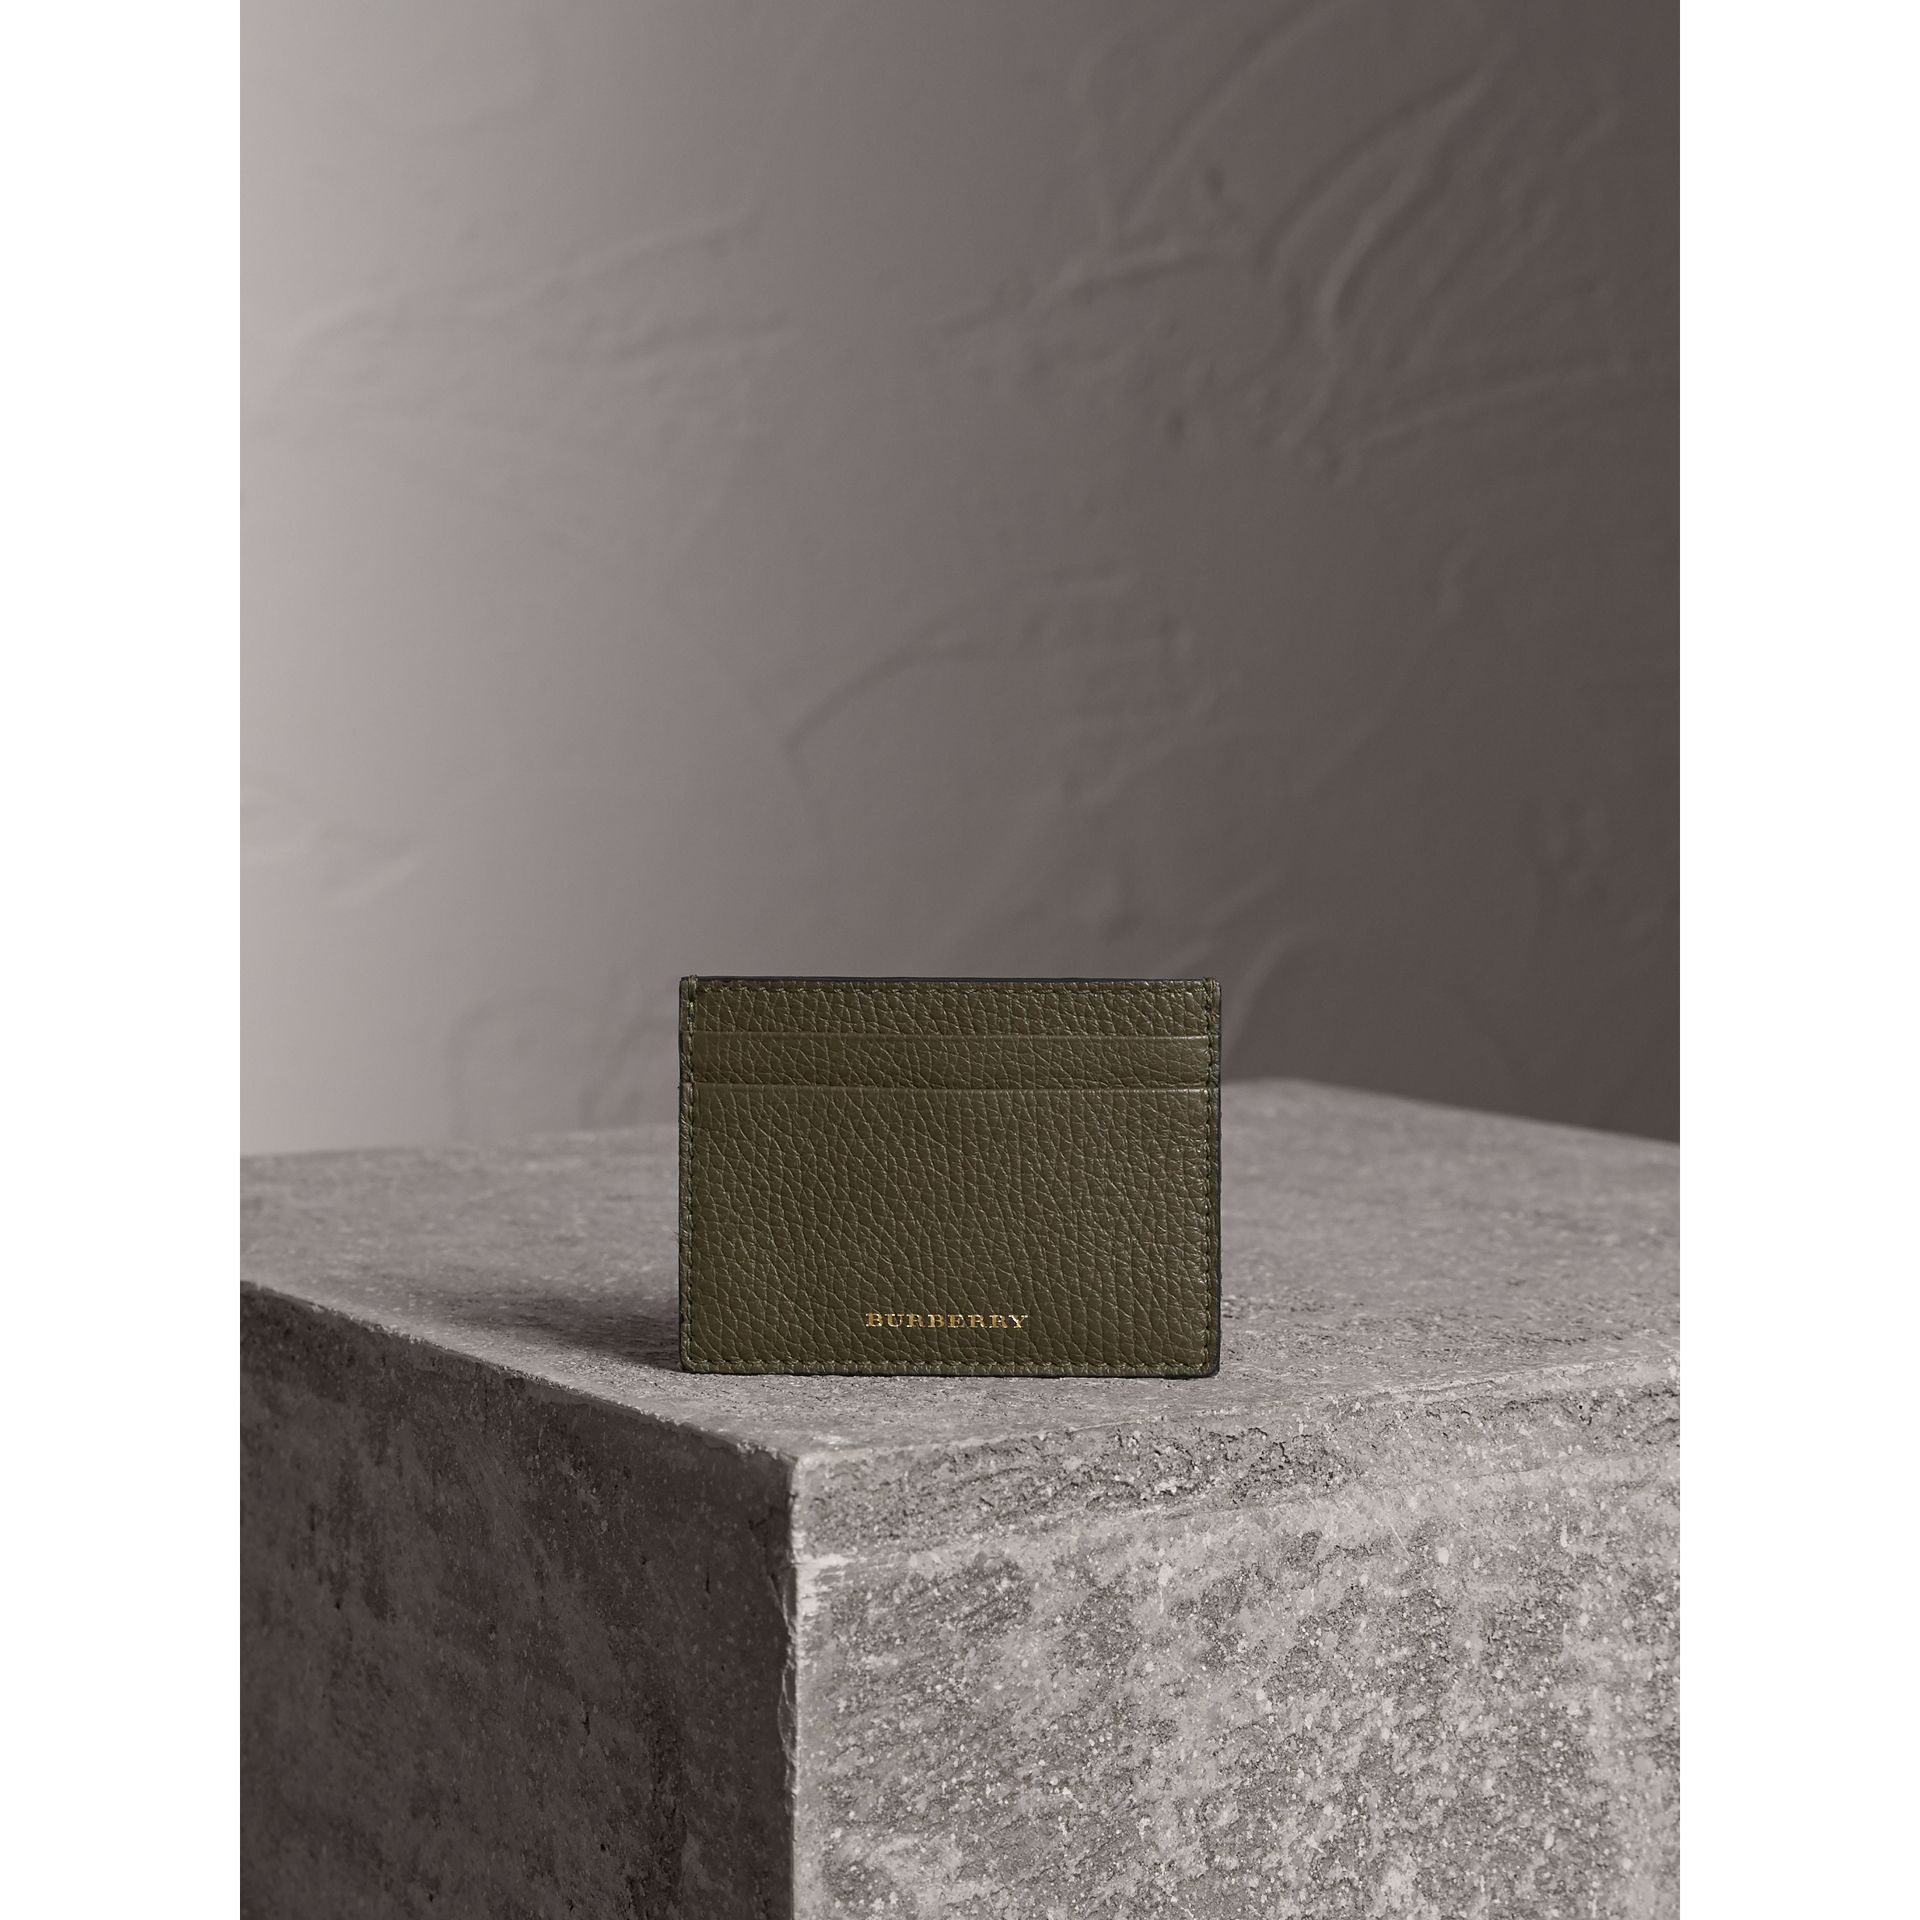 House Check and Grainy Leather Card Case in Sage - Men | Burberry - gallery image 3